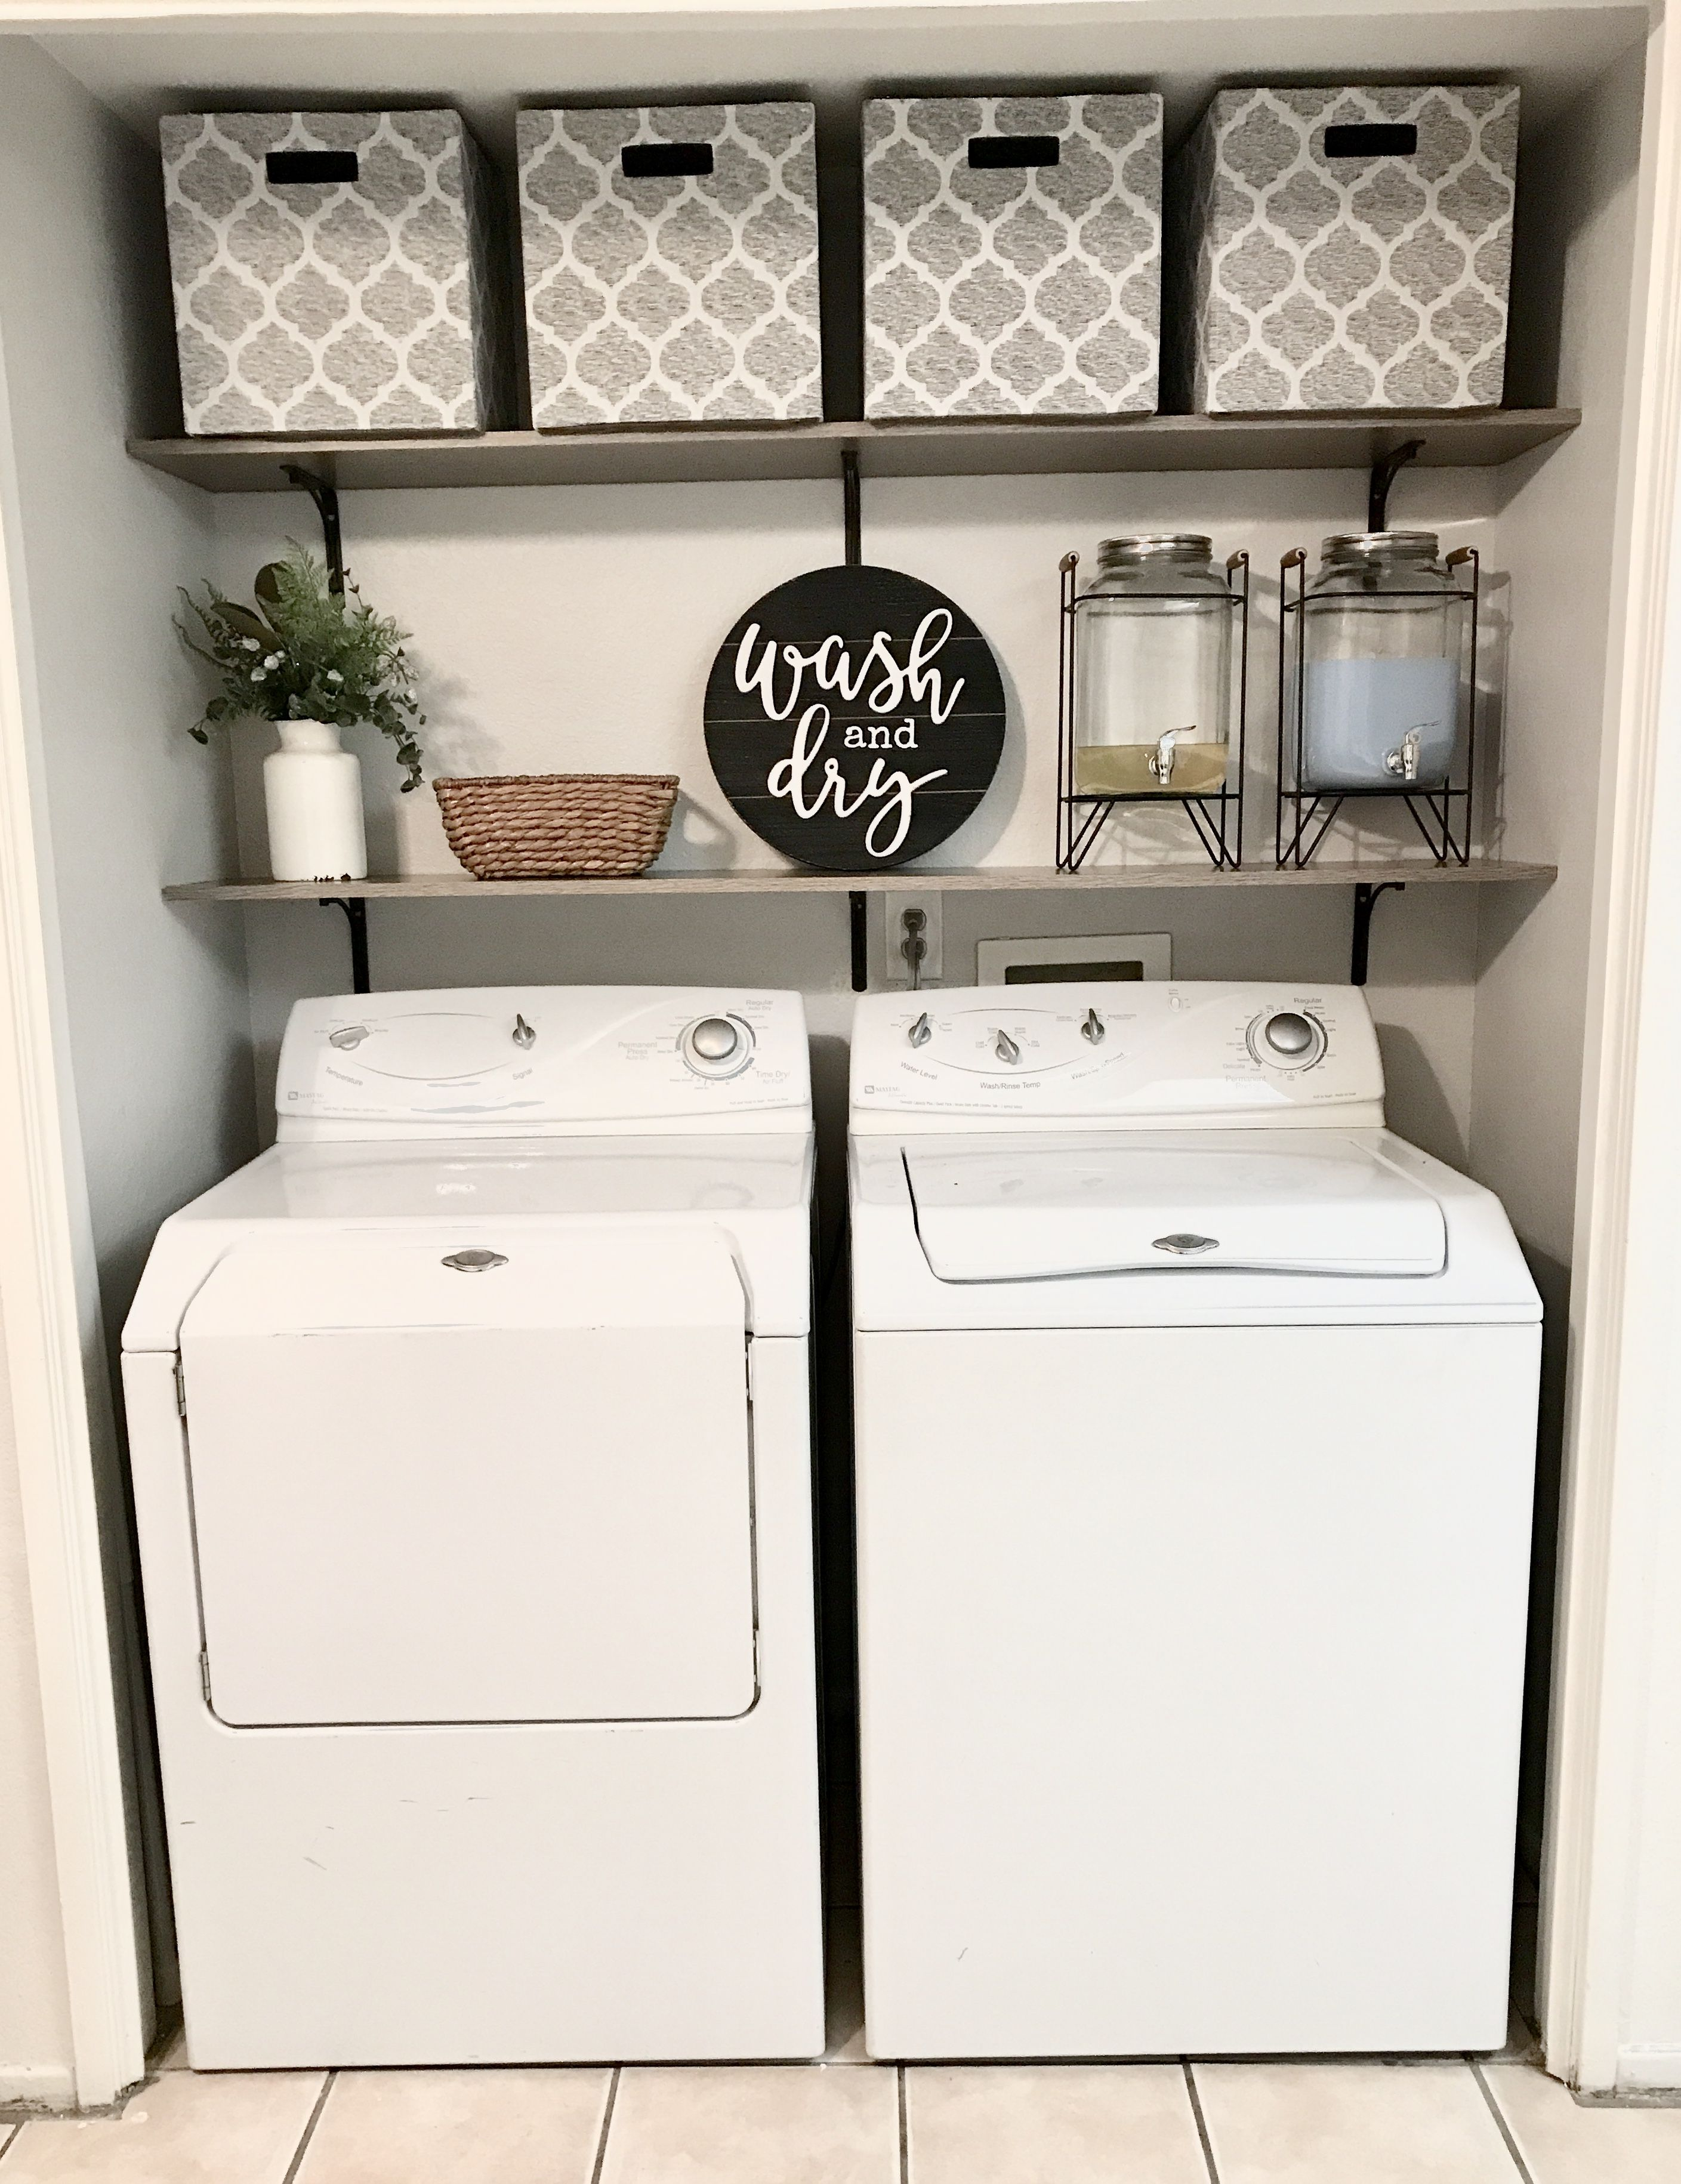 Pin By Emma Rowe On Laundry Room Laundy Room Laundry Room Diy Laundry Room Makeover